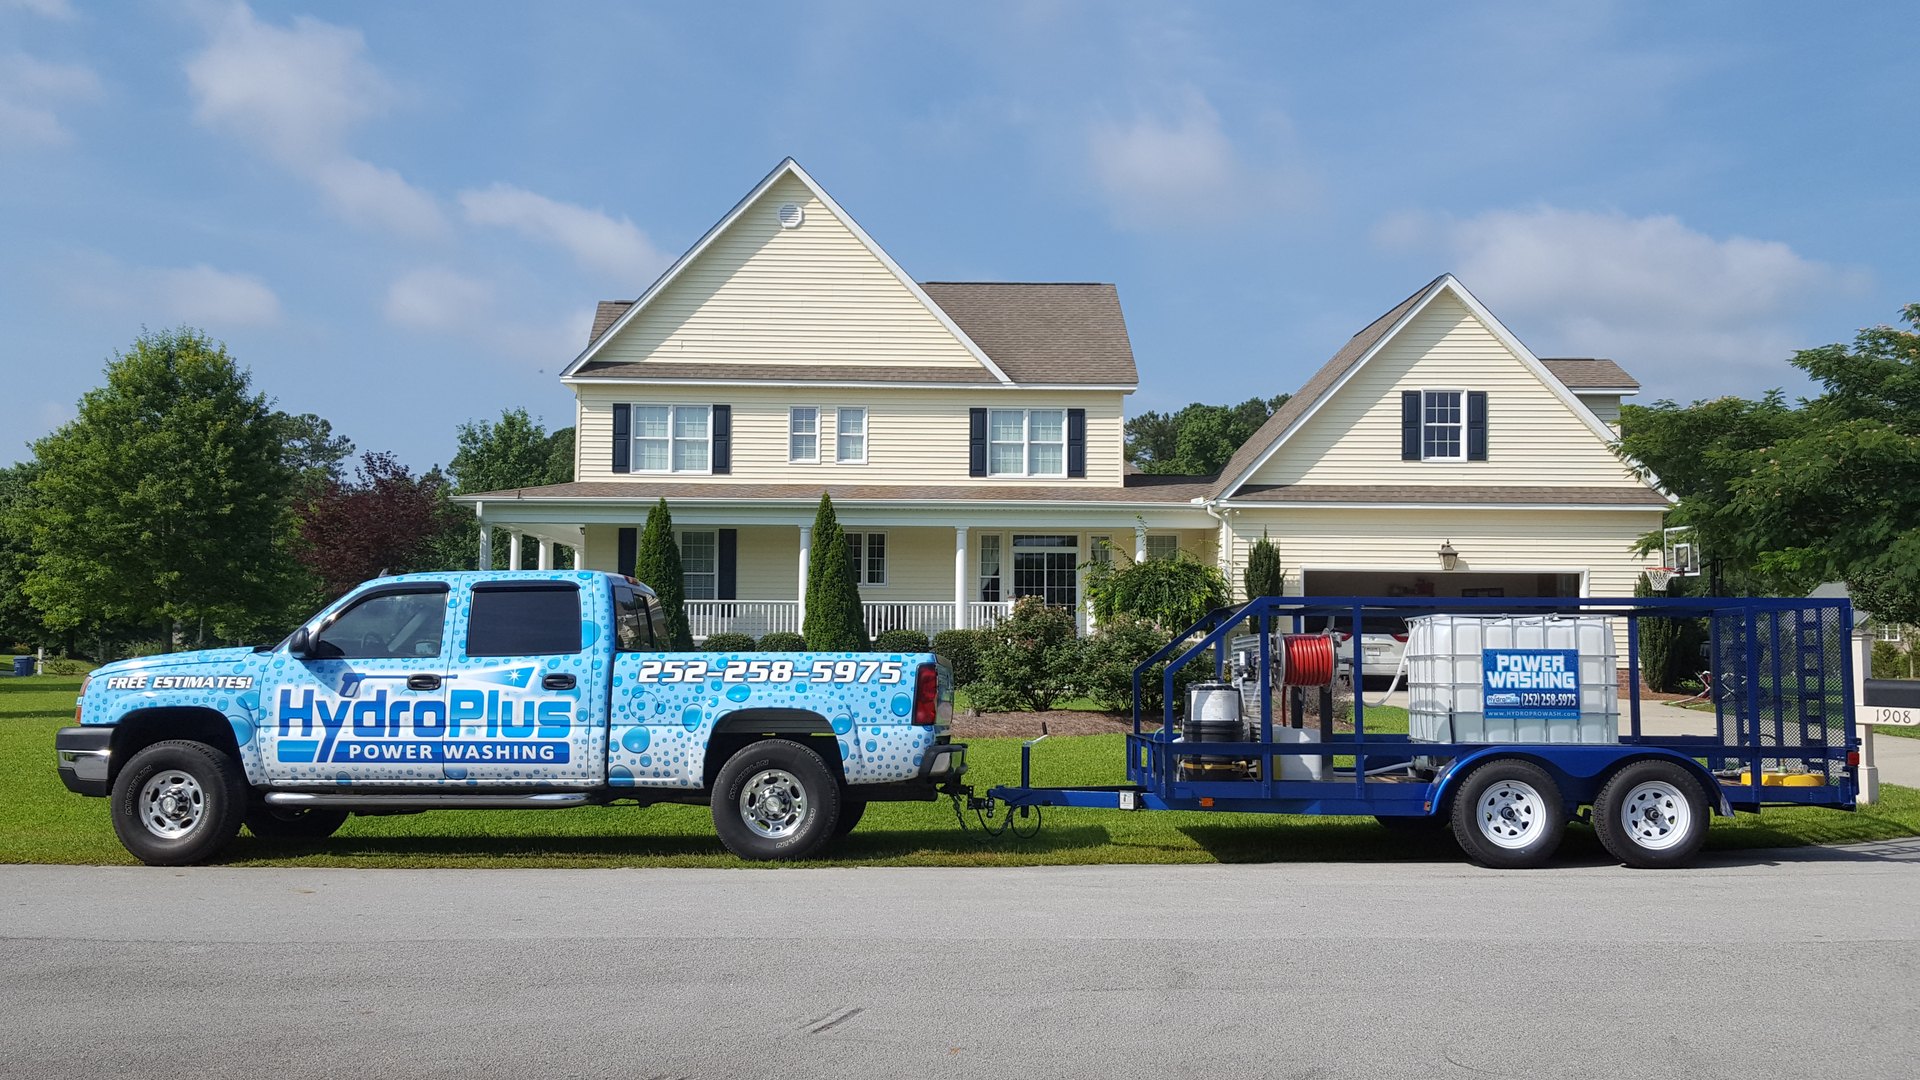 hydroplus power washing in greenville nc estimates call today